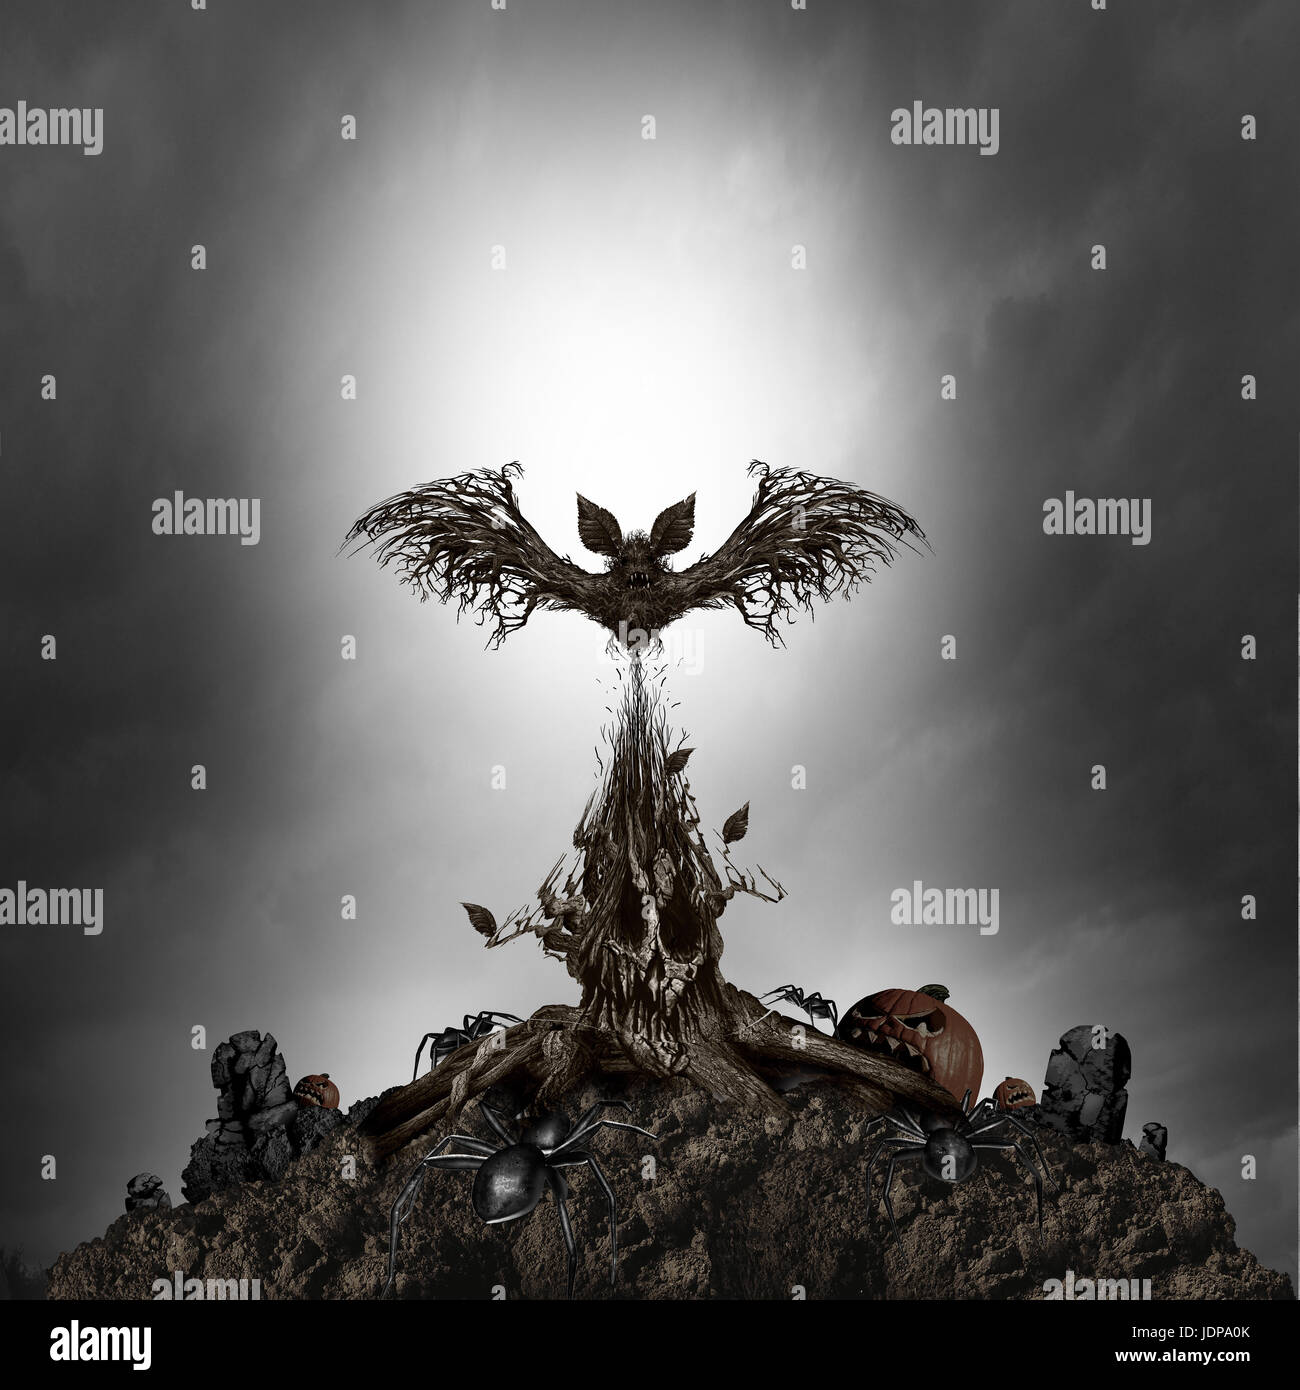 Scary tree monster concept as a creepy dark night horror scene with a living mutant plant shaped as an evil skull - Stock Image